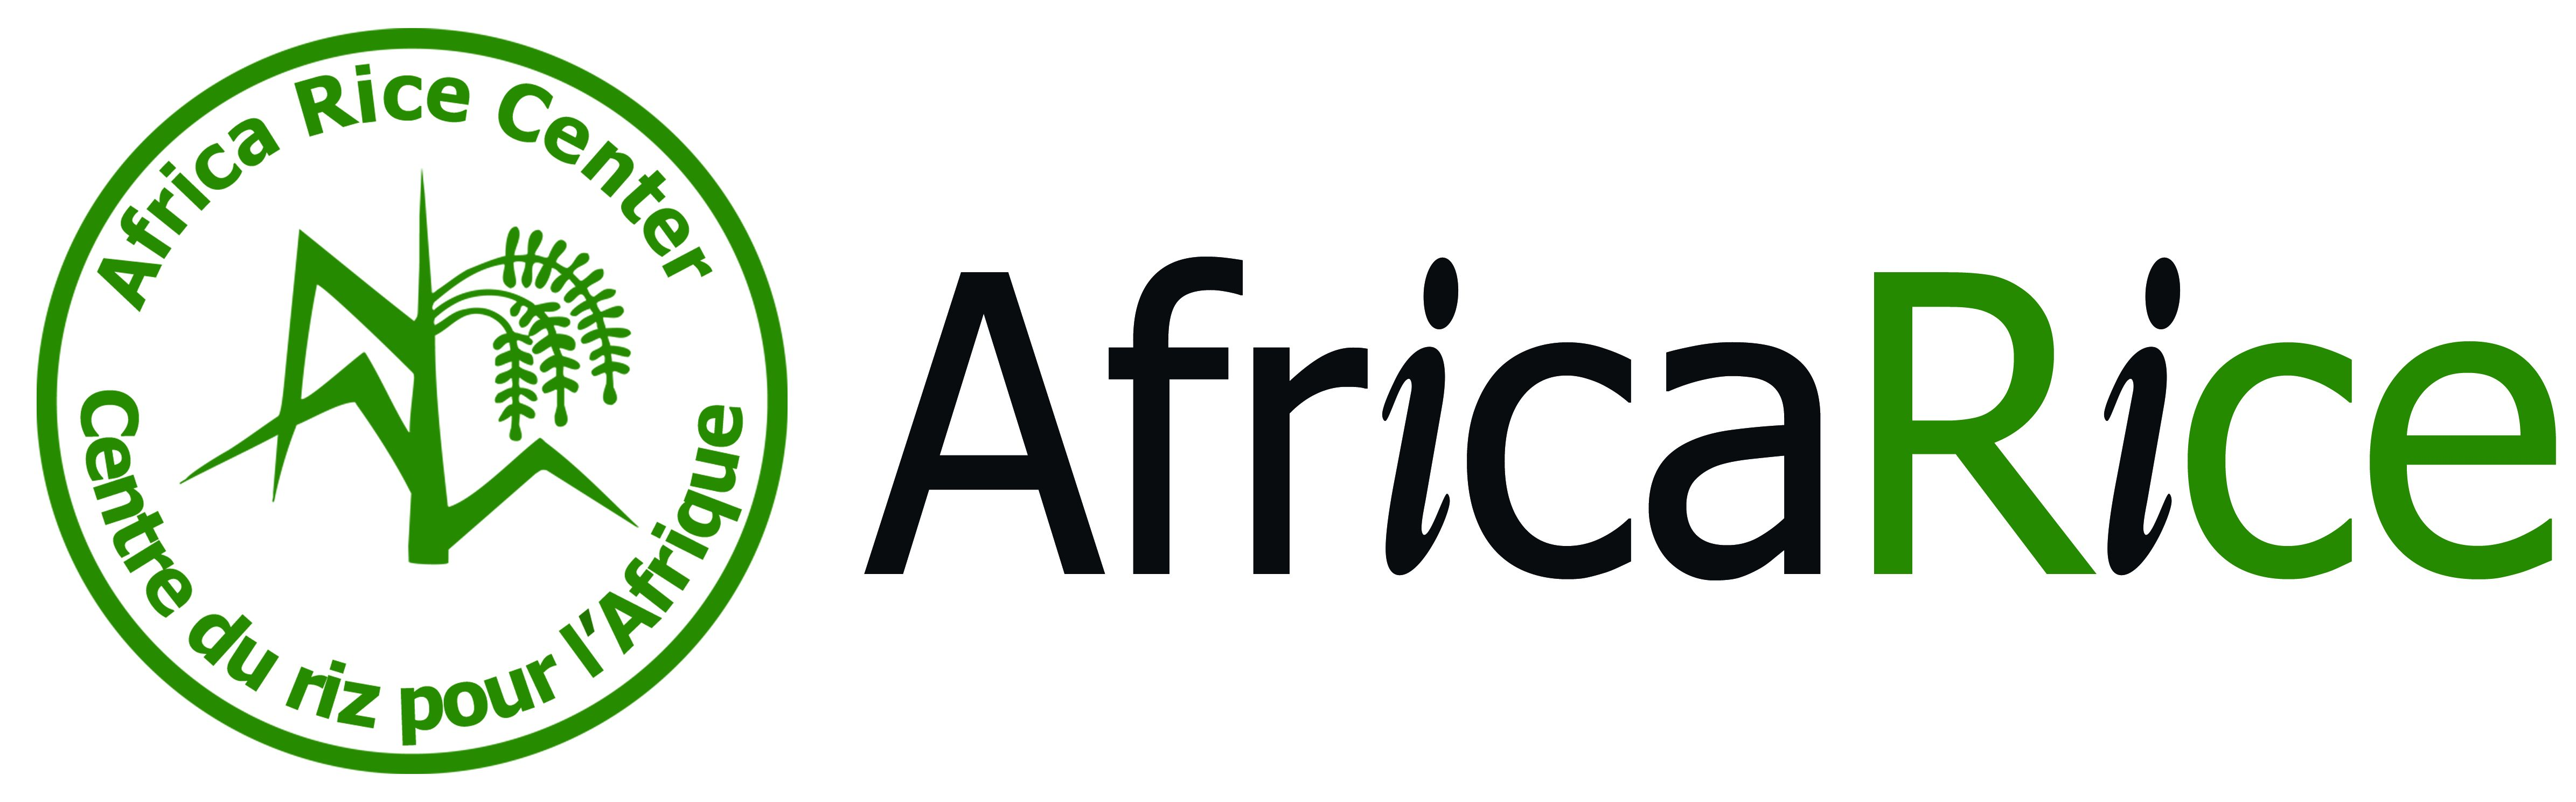 logo for Africa Rice Center